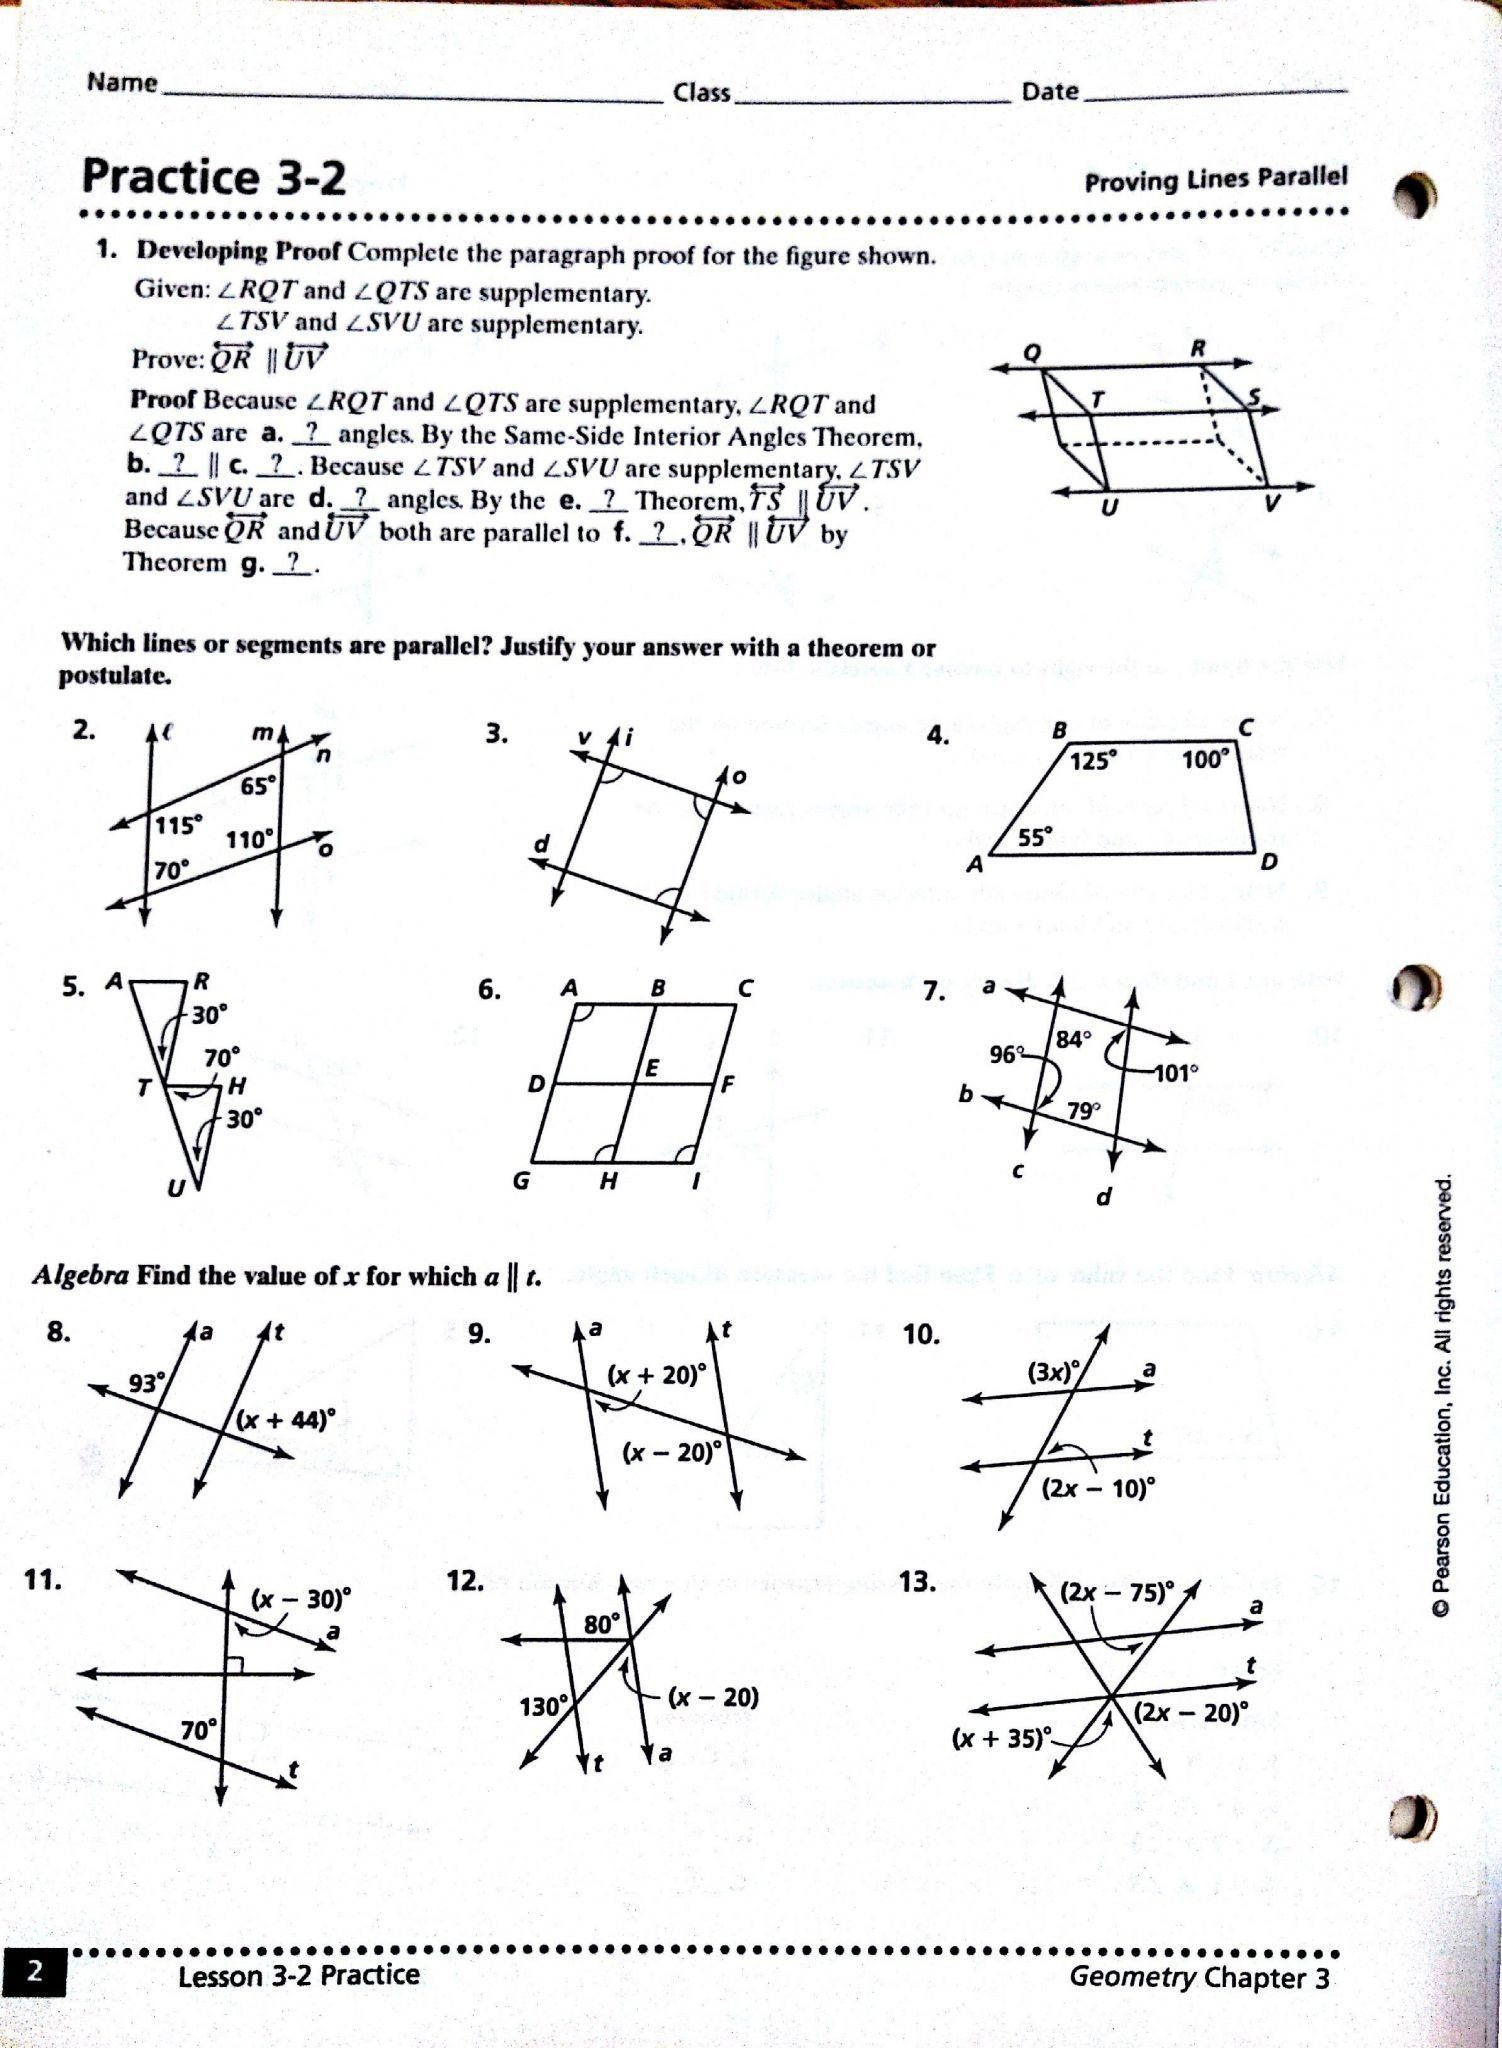 Congruent Triangles Worksheet Answer Key Pin On Printable Blank Worksheet Template